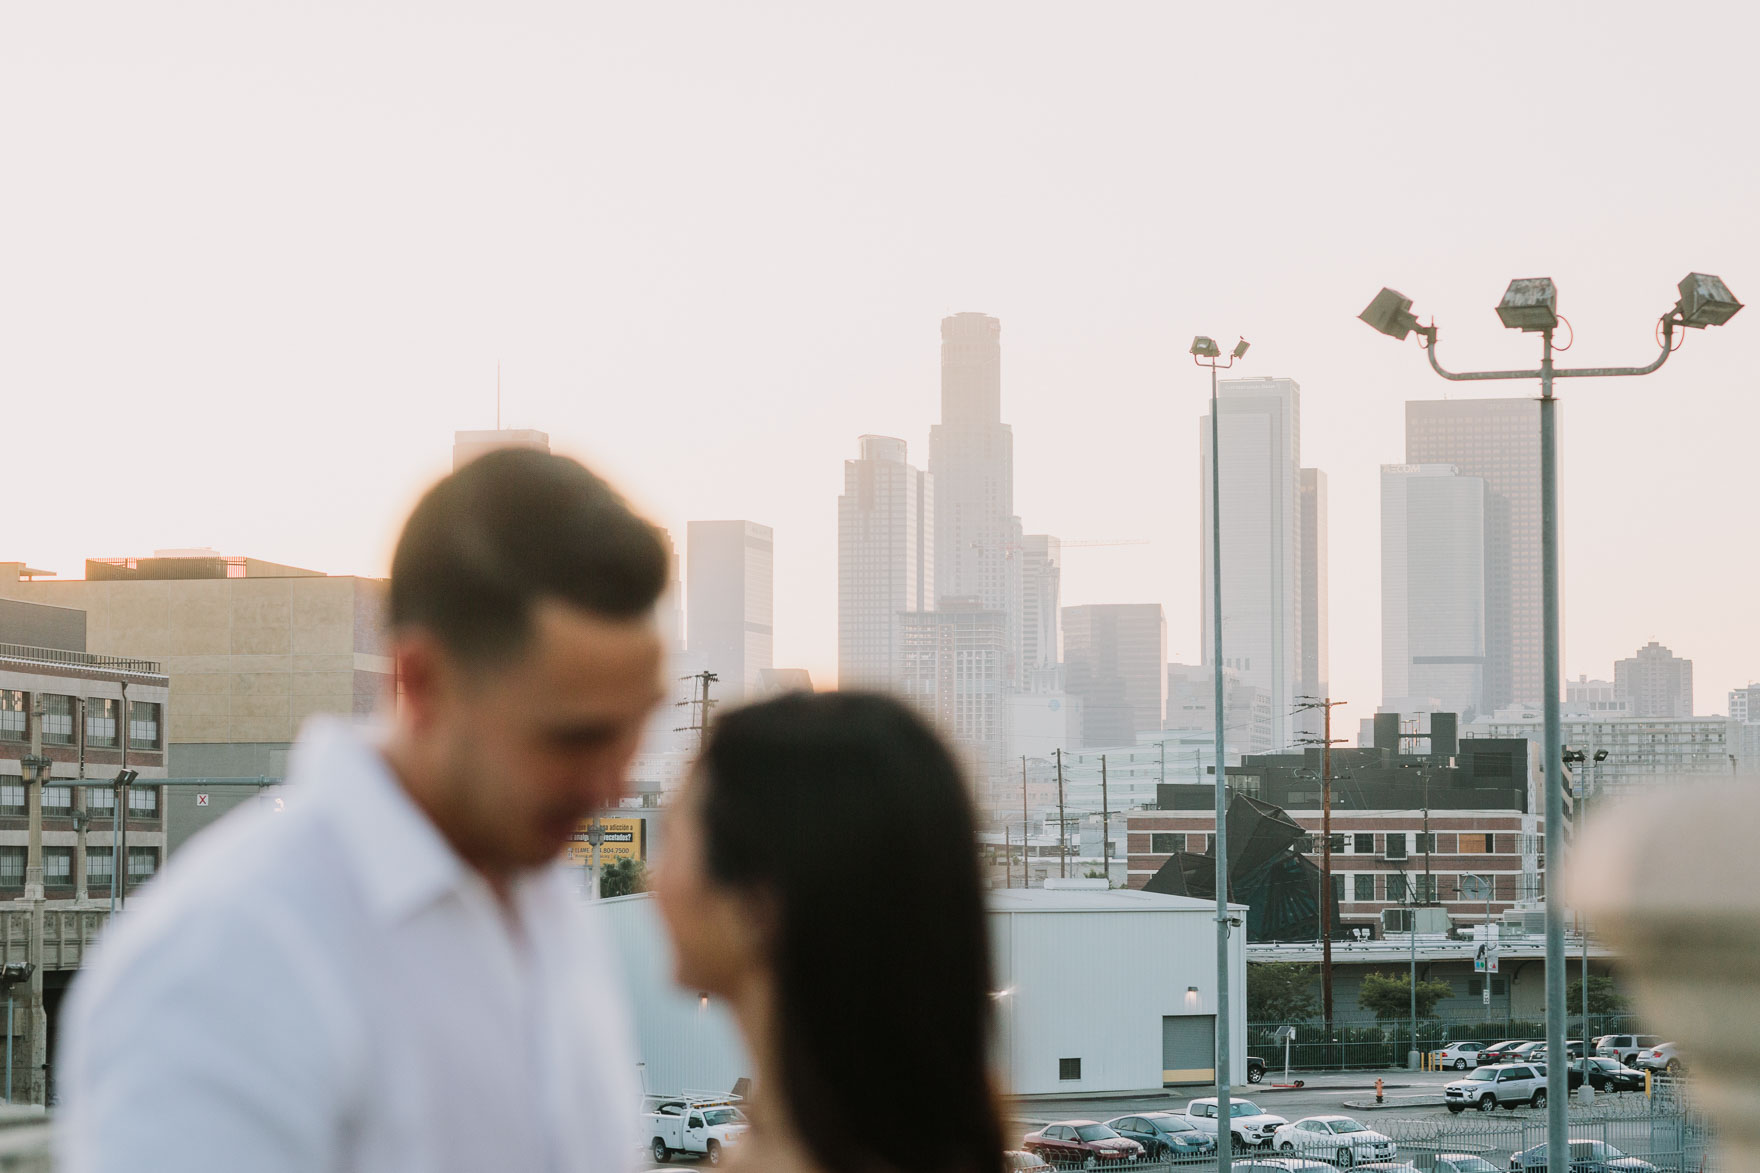 Modern Art and Skyline Views – Photo by Let's Frolic Together